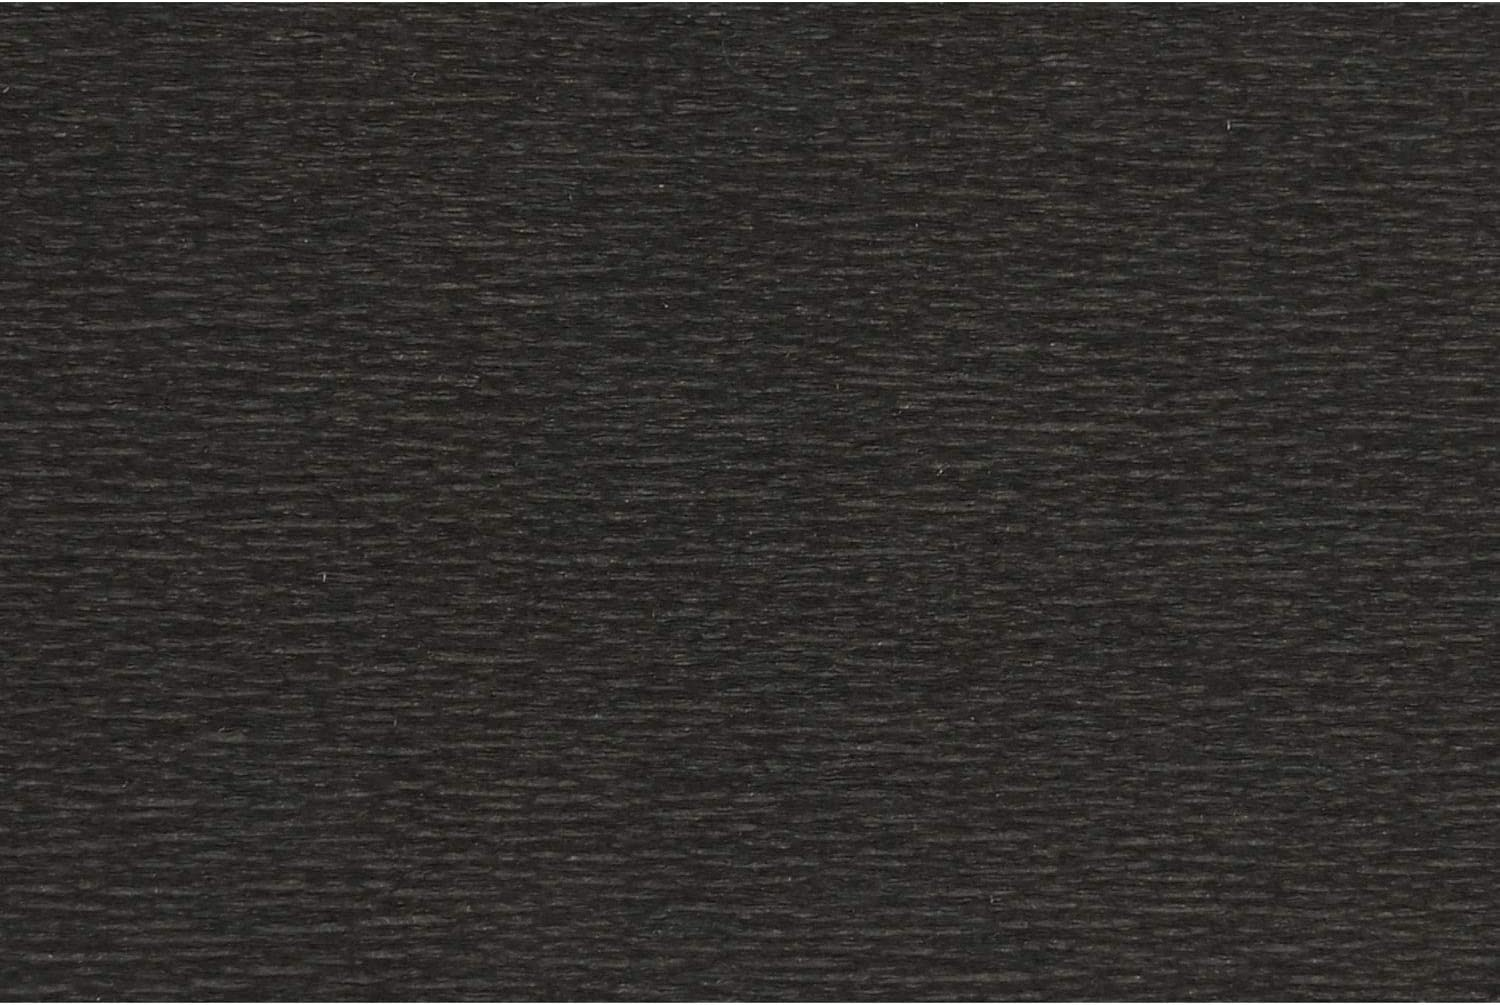 10.7-Square Feet Black LG11016 Lia Griffith Extra Fine Crepe Paper Folds Roll